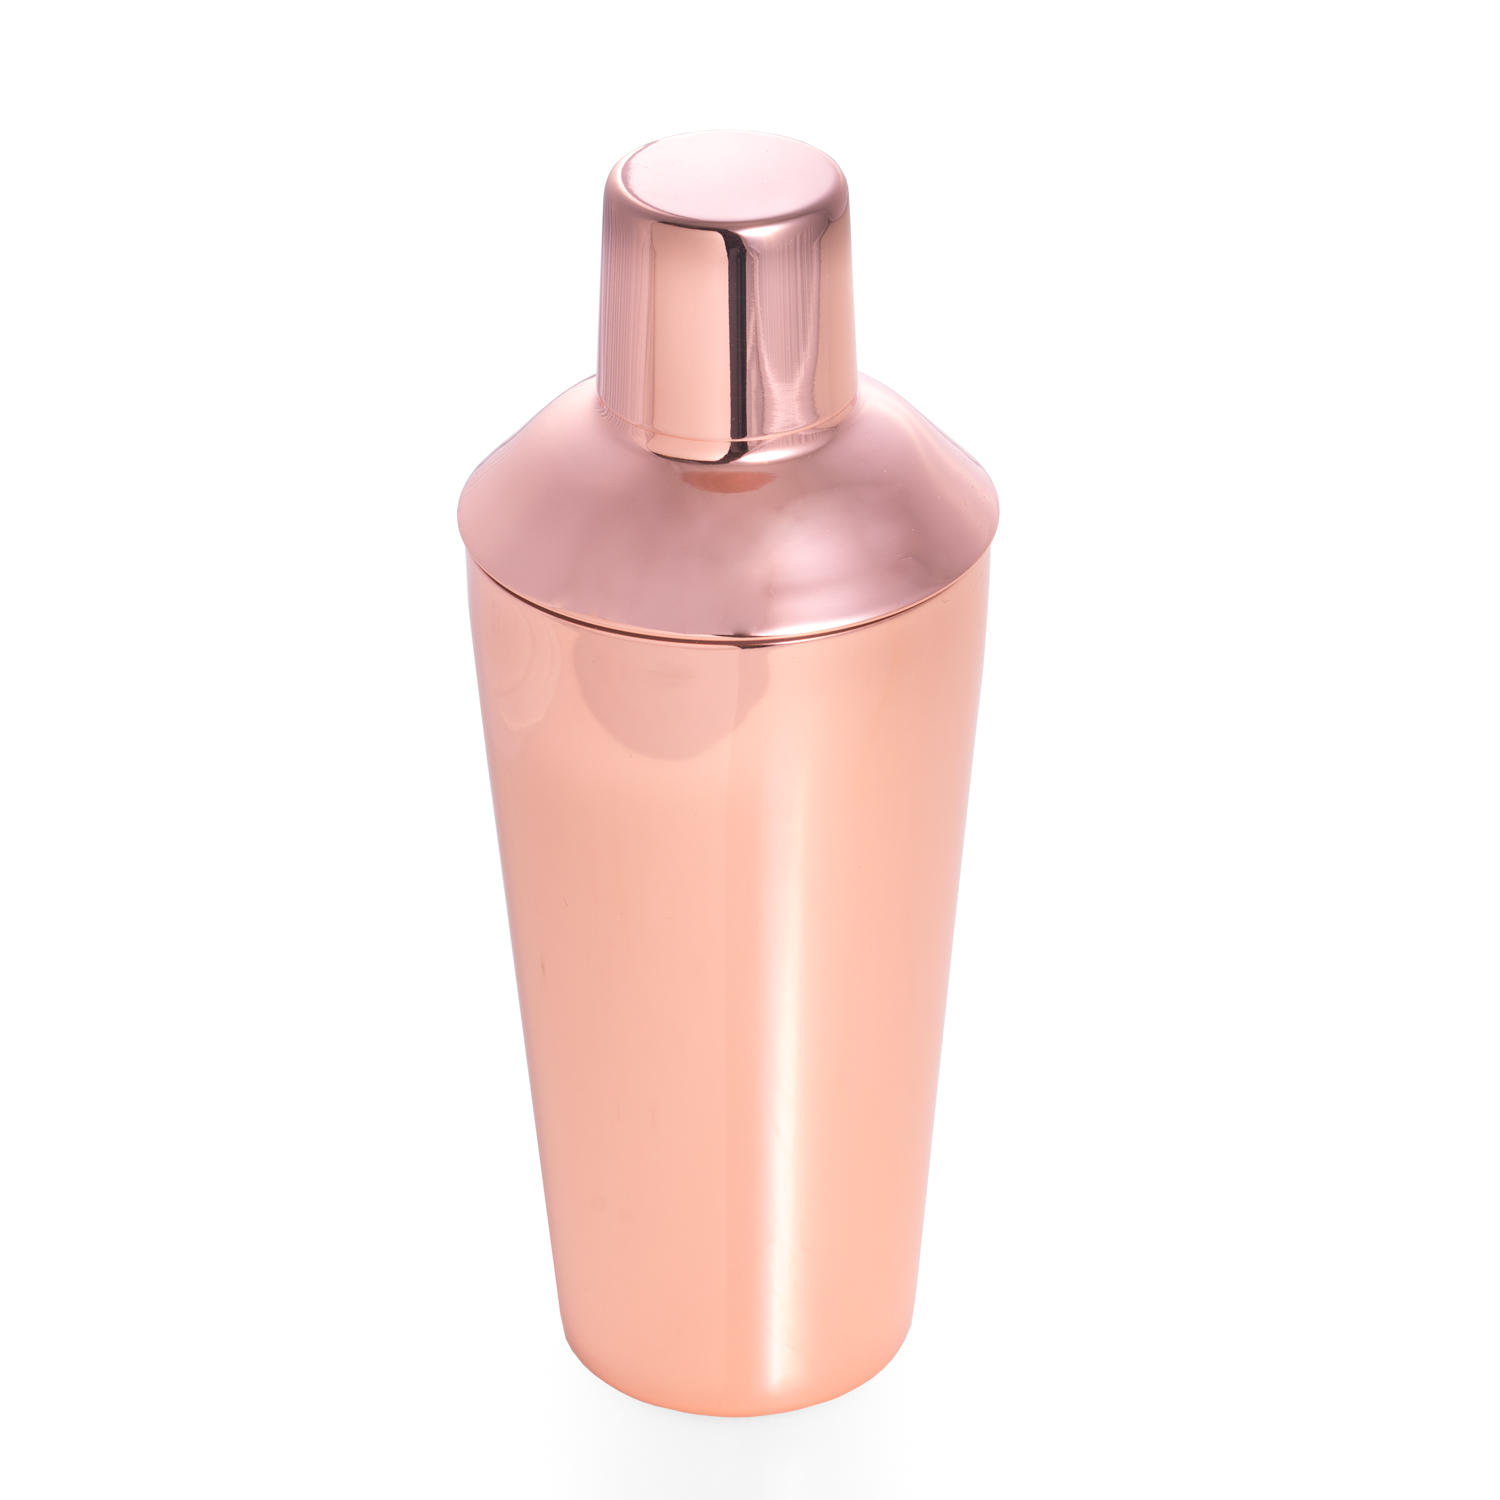 25 oz. Copper Plated Shaker